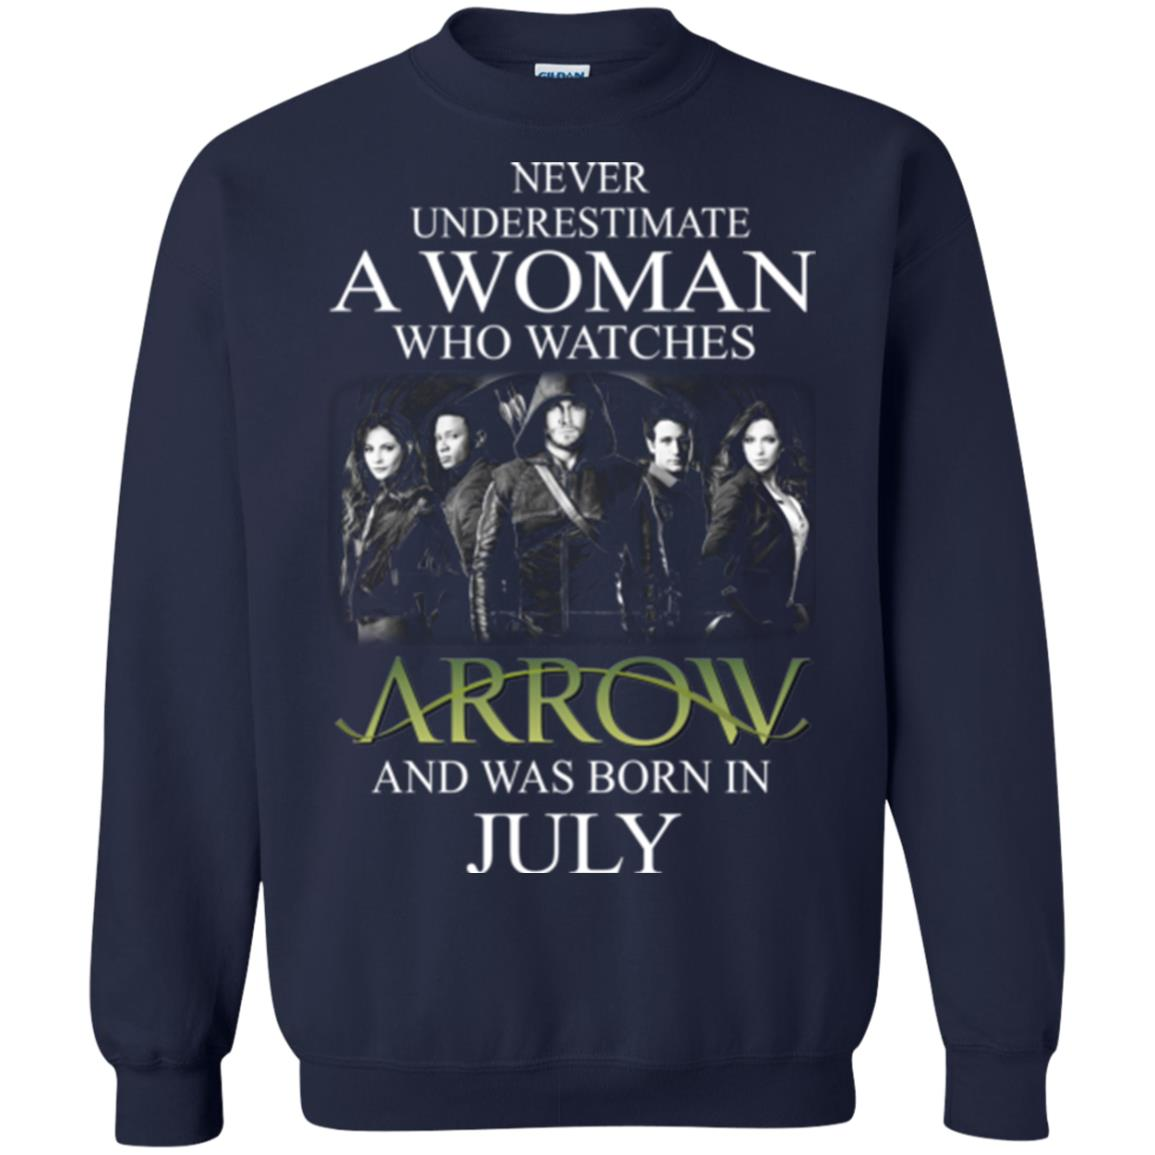 Never Underestimate A woman who watches Arrow and was born in July shirt - image 1525